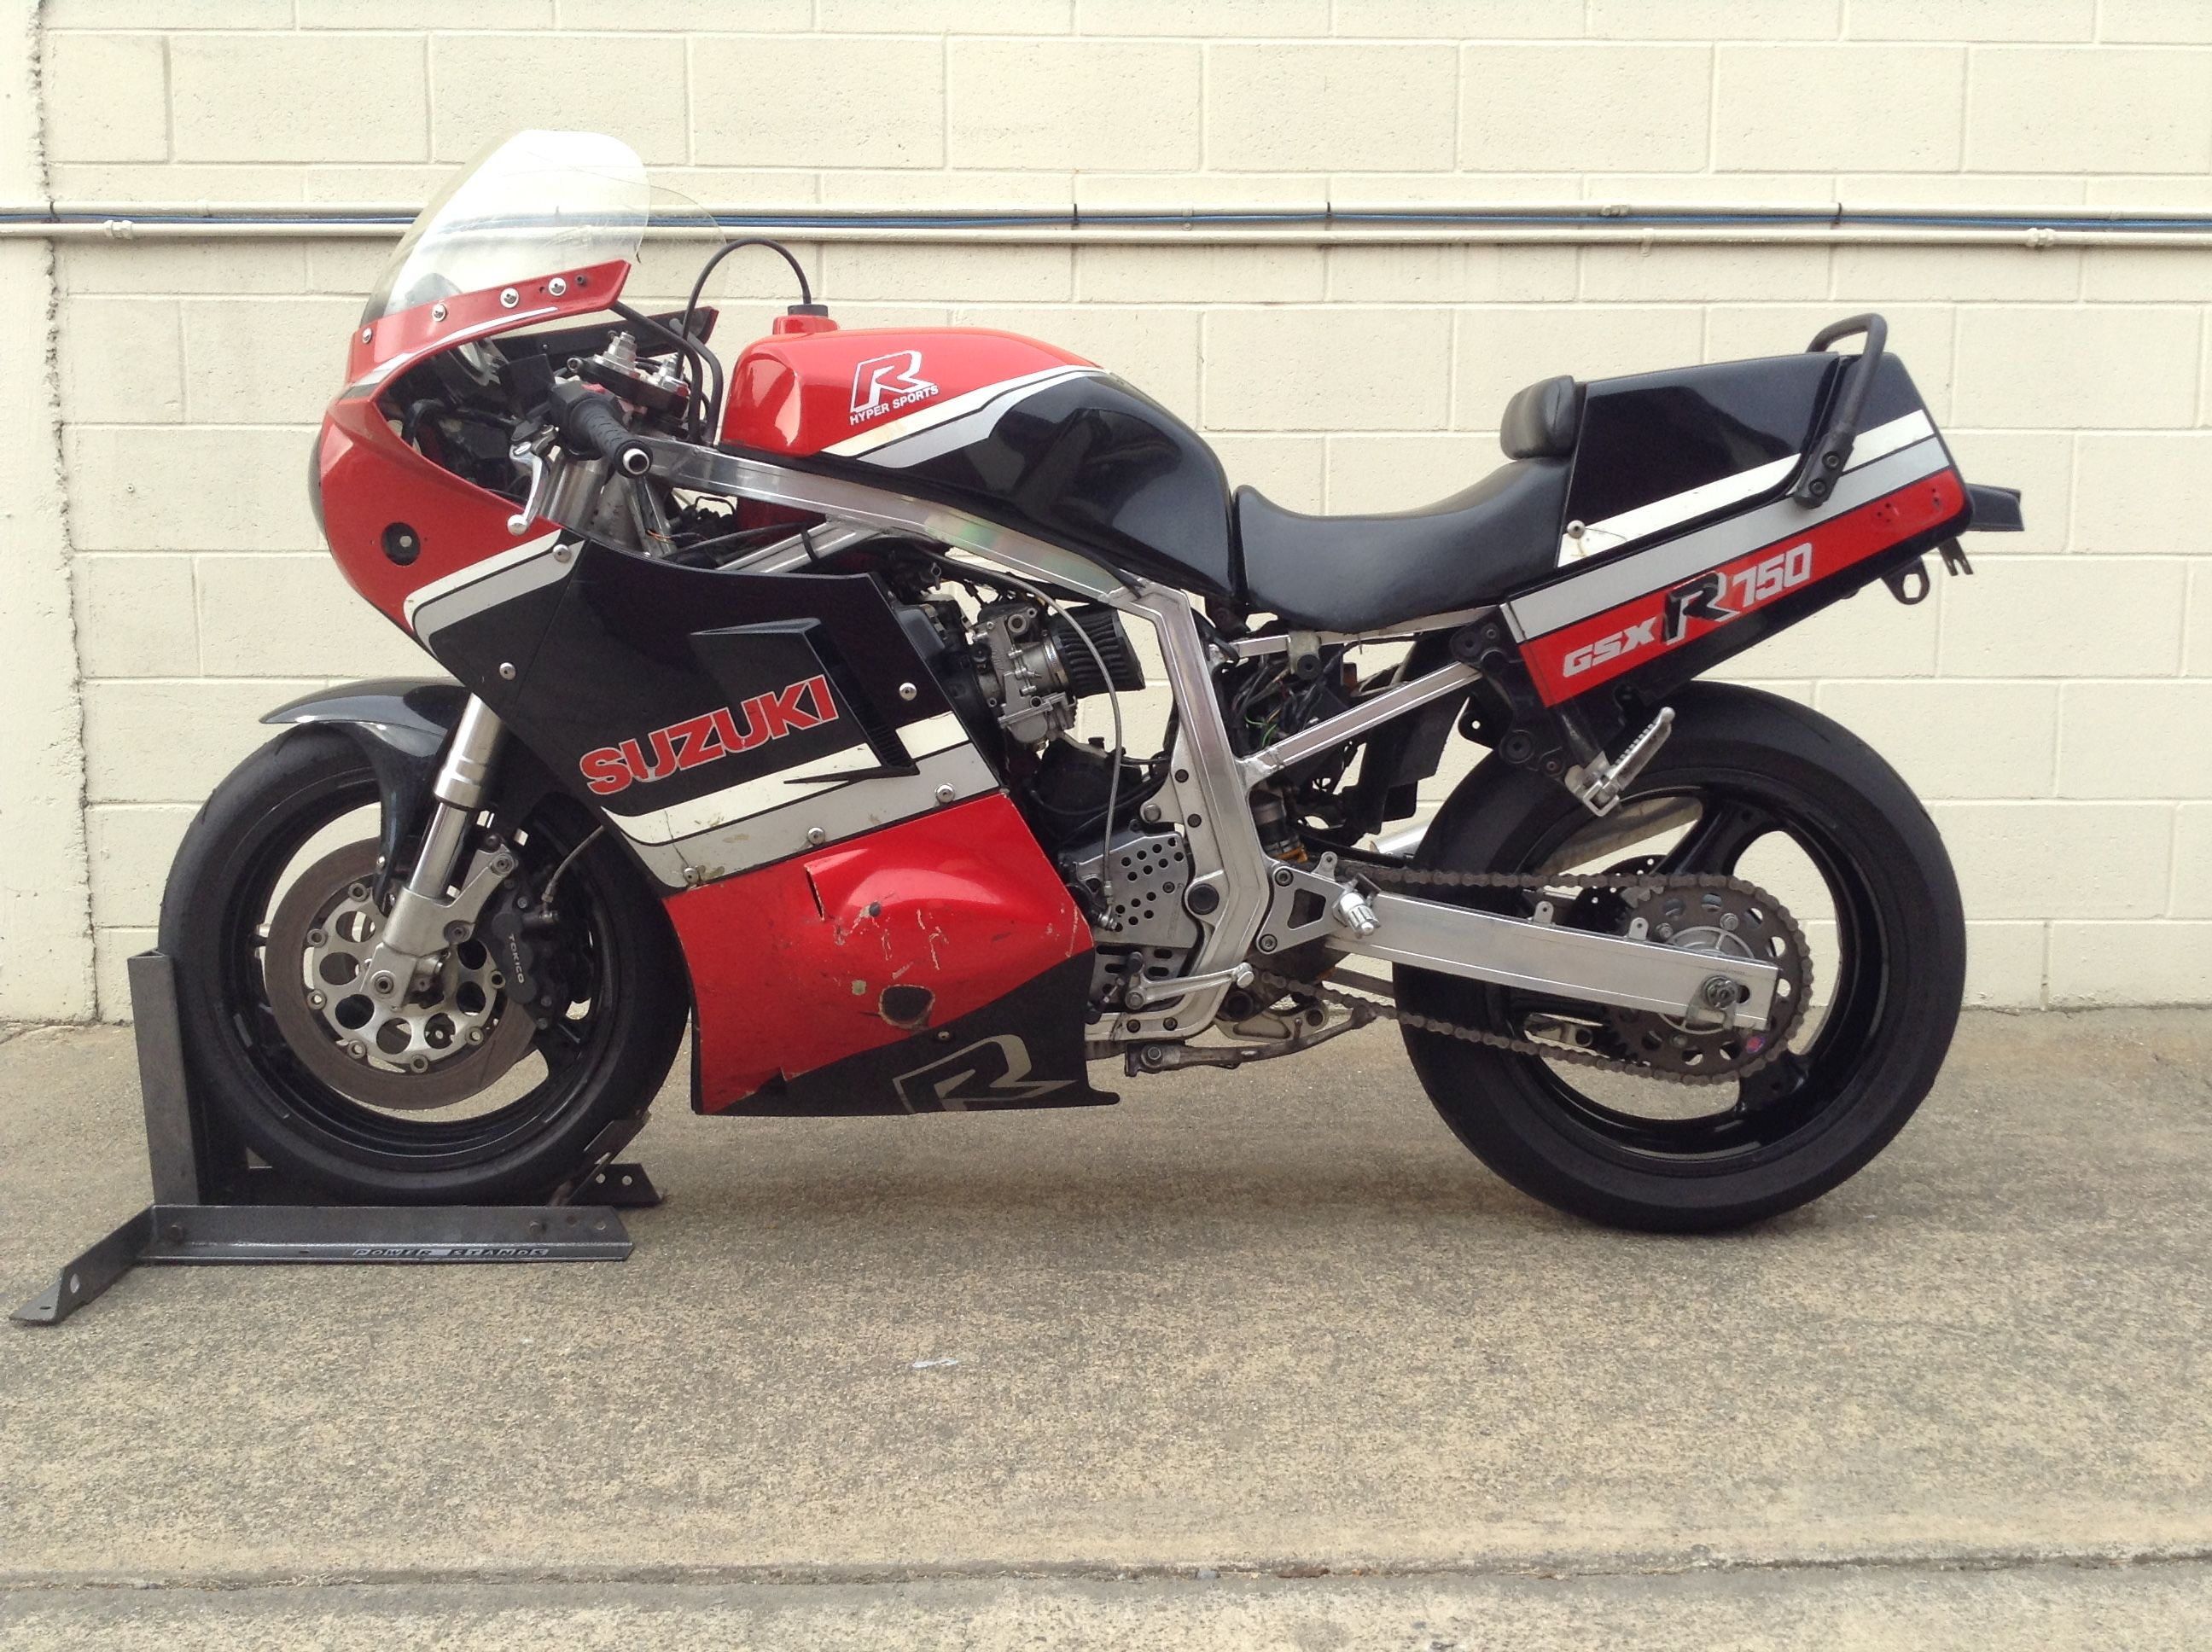 1986 Suzuki GSXR 750 New special pricing for many sizes of our units. Look  no further Armored Mini Storage! It's the place when you're out of space!